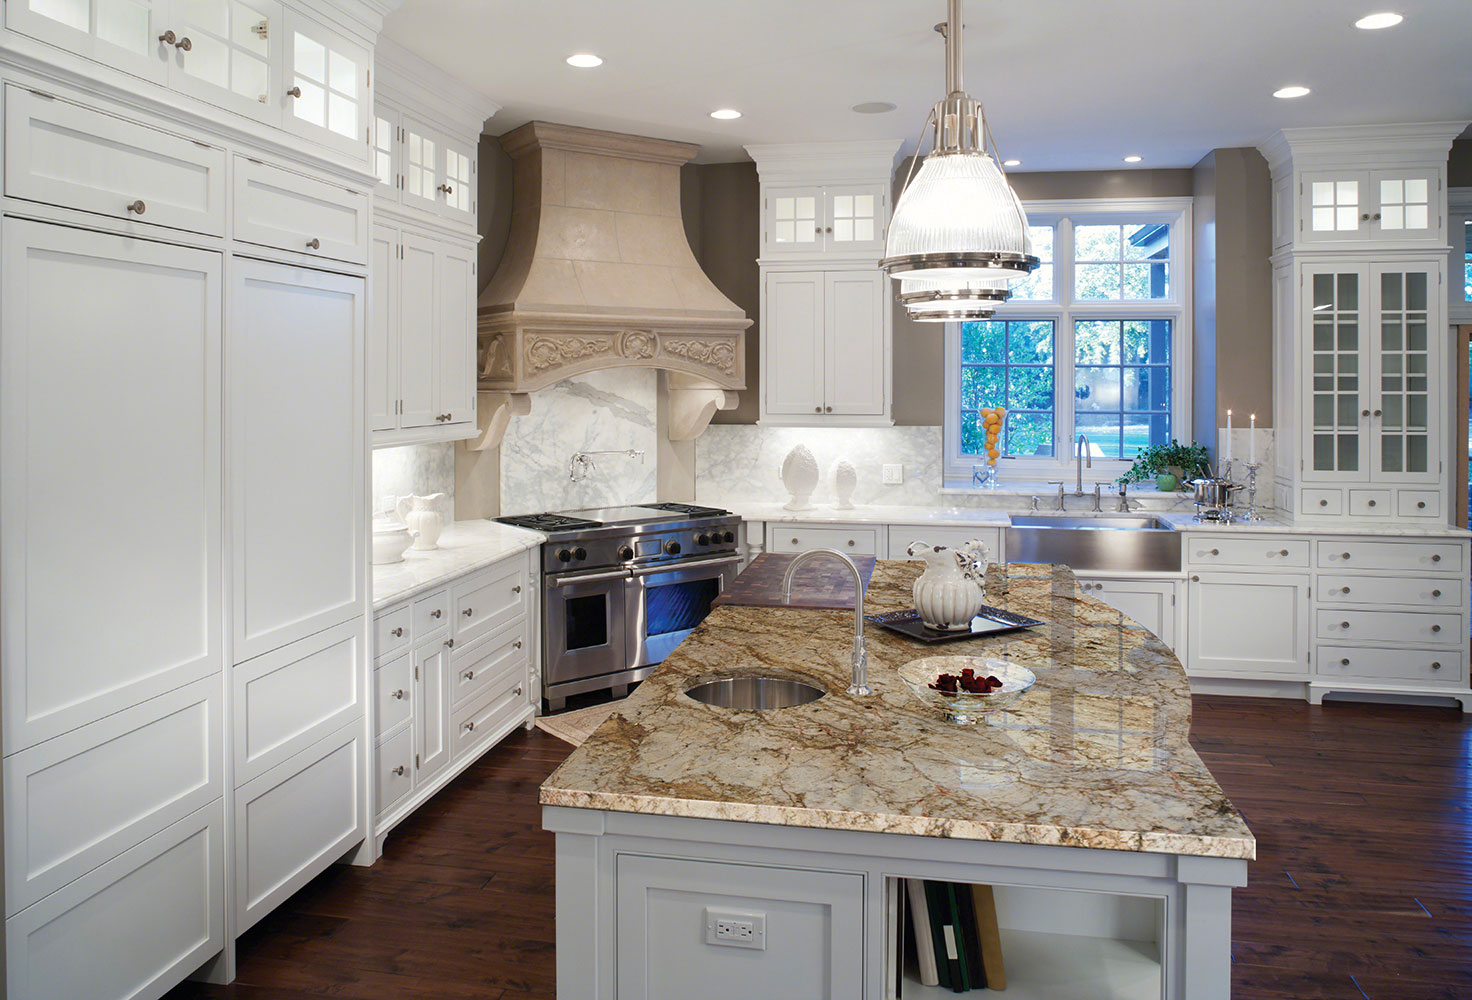 2015 Hot Kitchen Trends – Part 1: Cabinets & Countertops Different Color Kitchen Countertops on different color trim, different color islands, different color tile, blue color kitchen countertops, different color paint, different color flooring, one color kitchen countertops, different color stone,